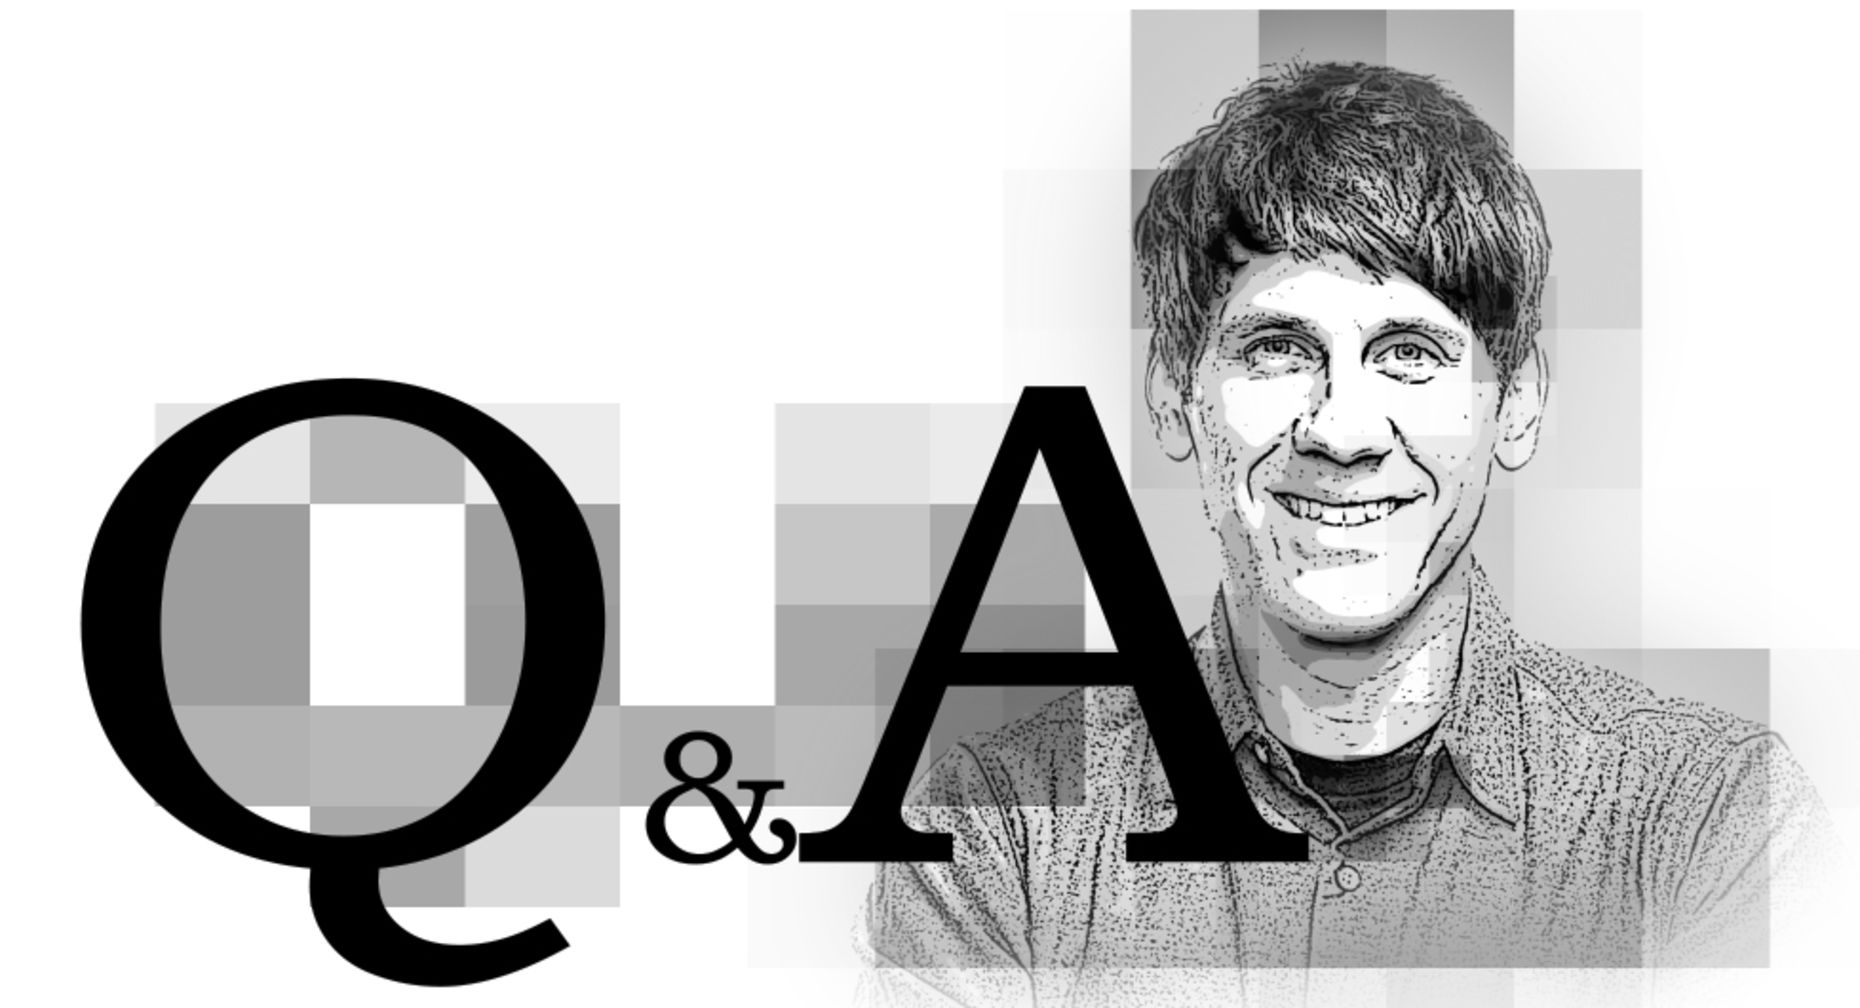 Foursquare CEO Dennis Crowley. Illustration by Matthew Vascellaro.